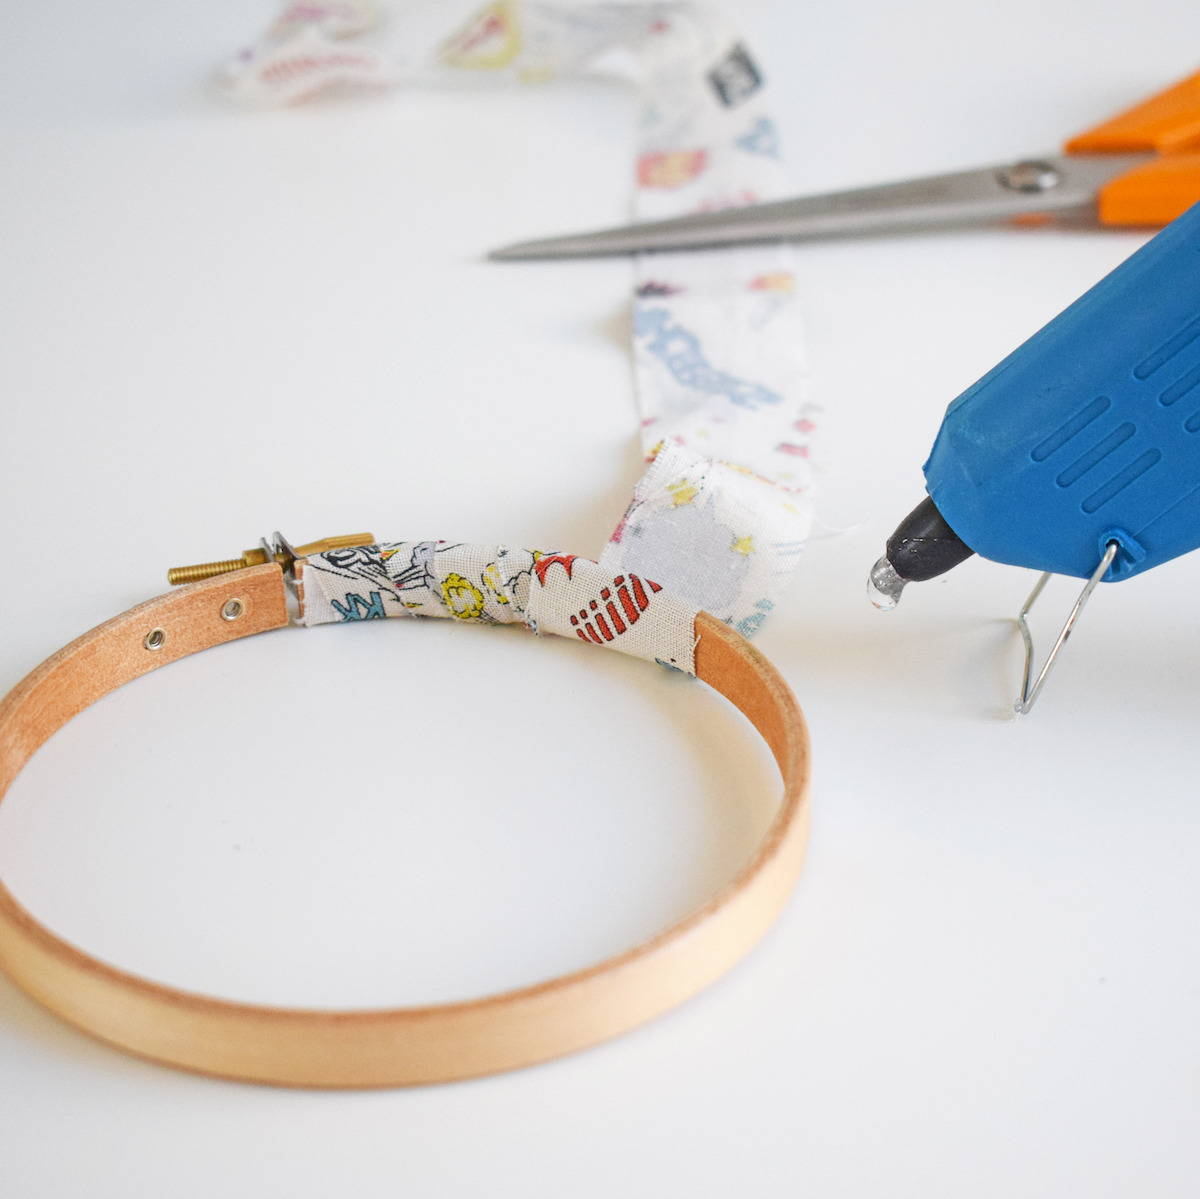 How to wrap your embroidery hoop in fabric